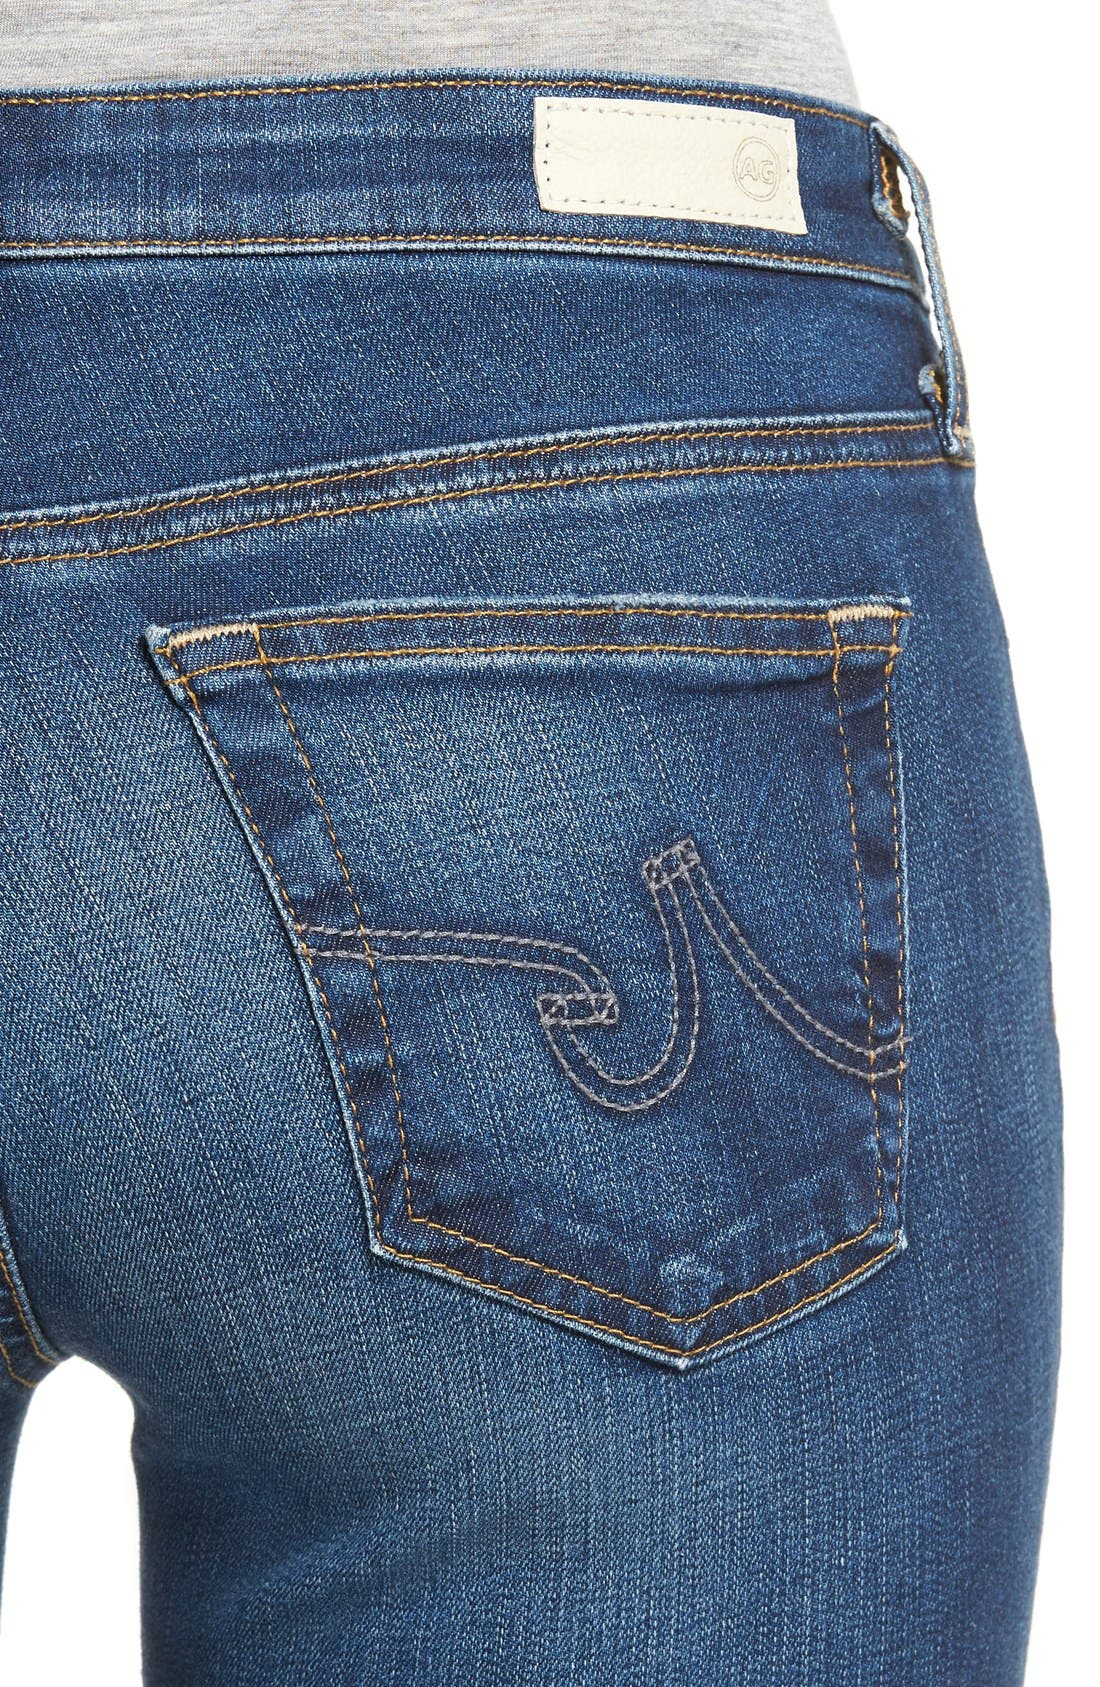 Alternate Image 4  - AG 'The Legging' Ankle Jeans (7 Year Break Me Down)